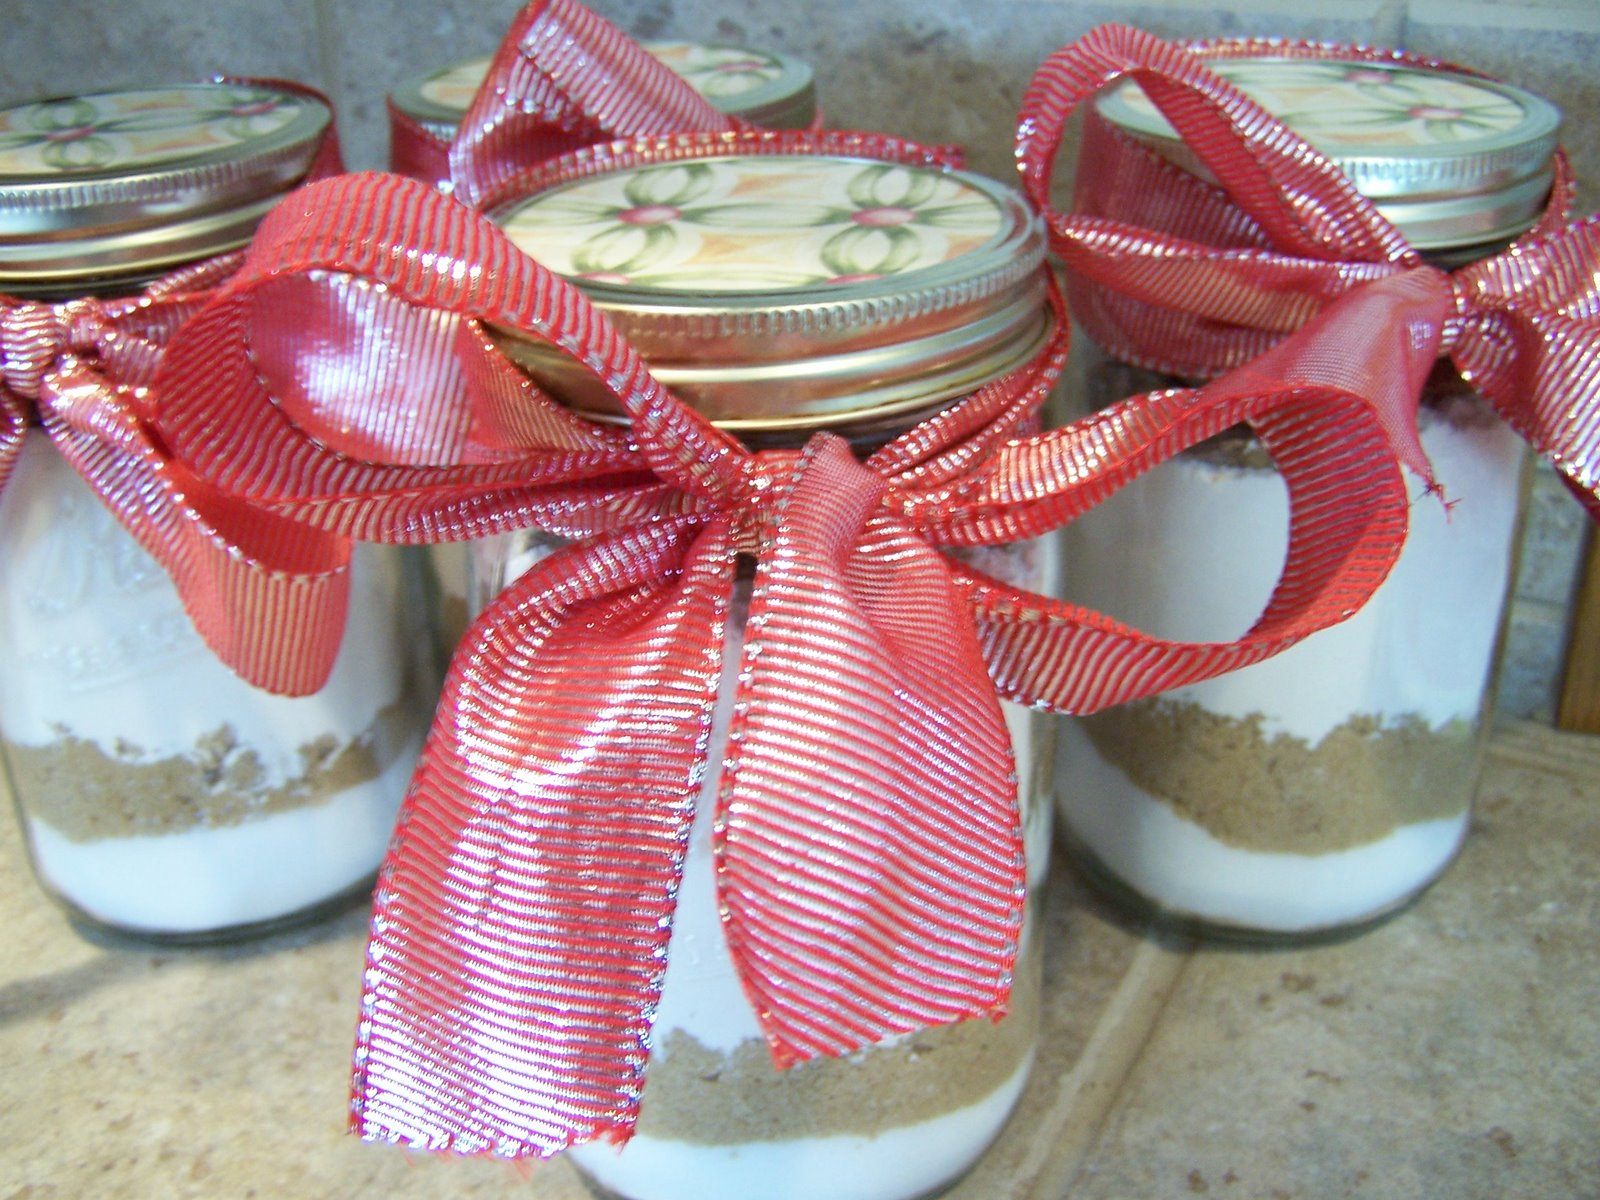 The Best Cookie Mix In A Jar Christmas Gift Idea! « GoodNCrazy